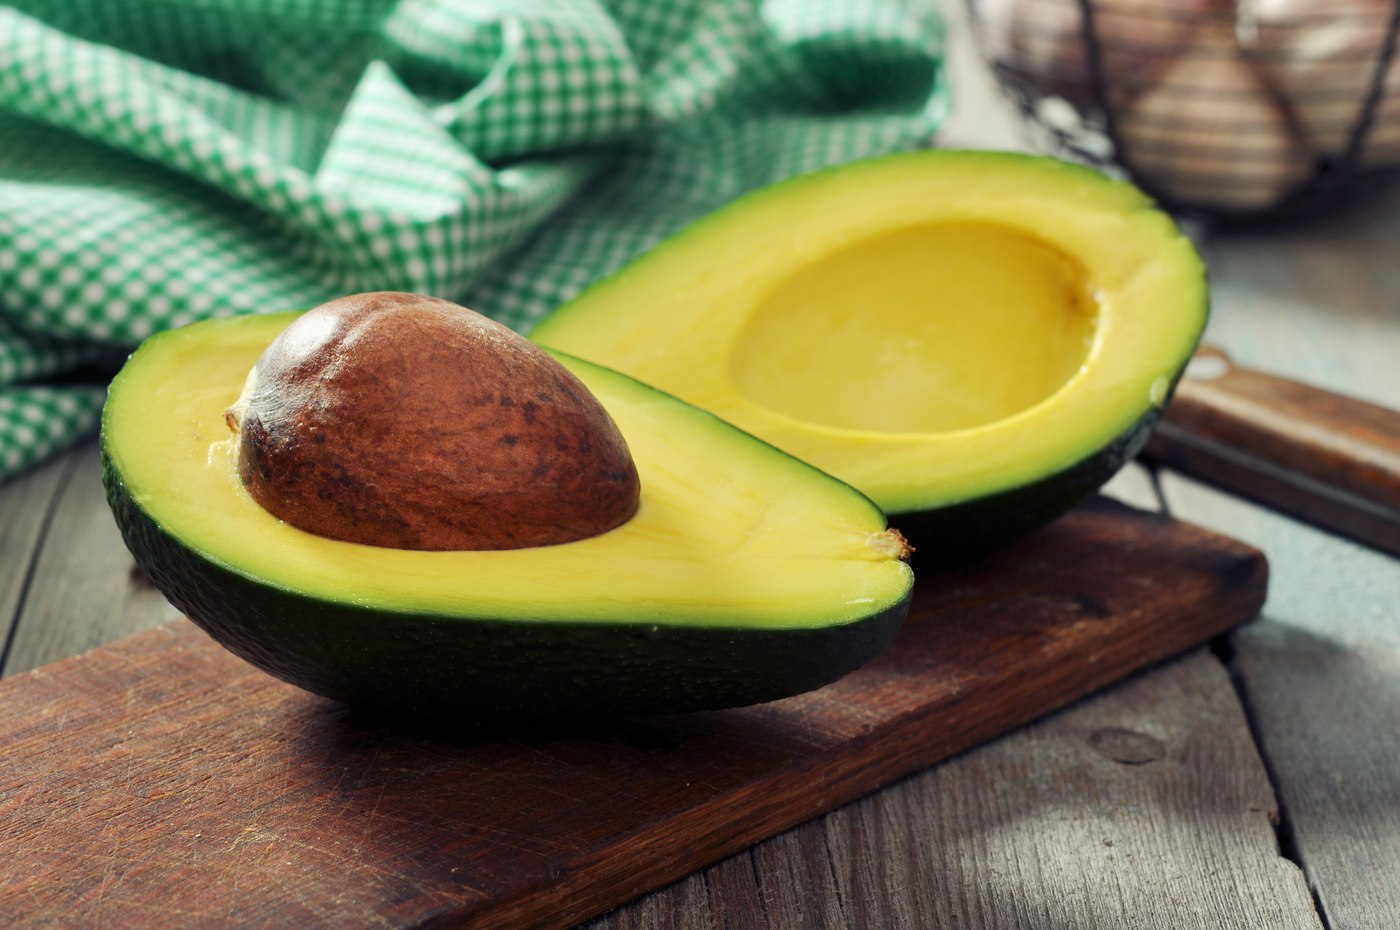 All About the Avocado